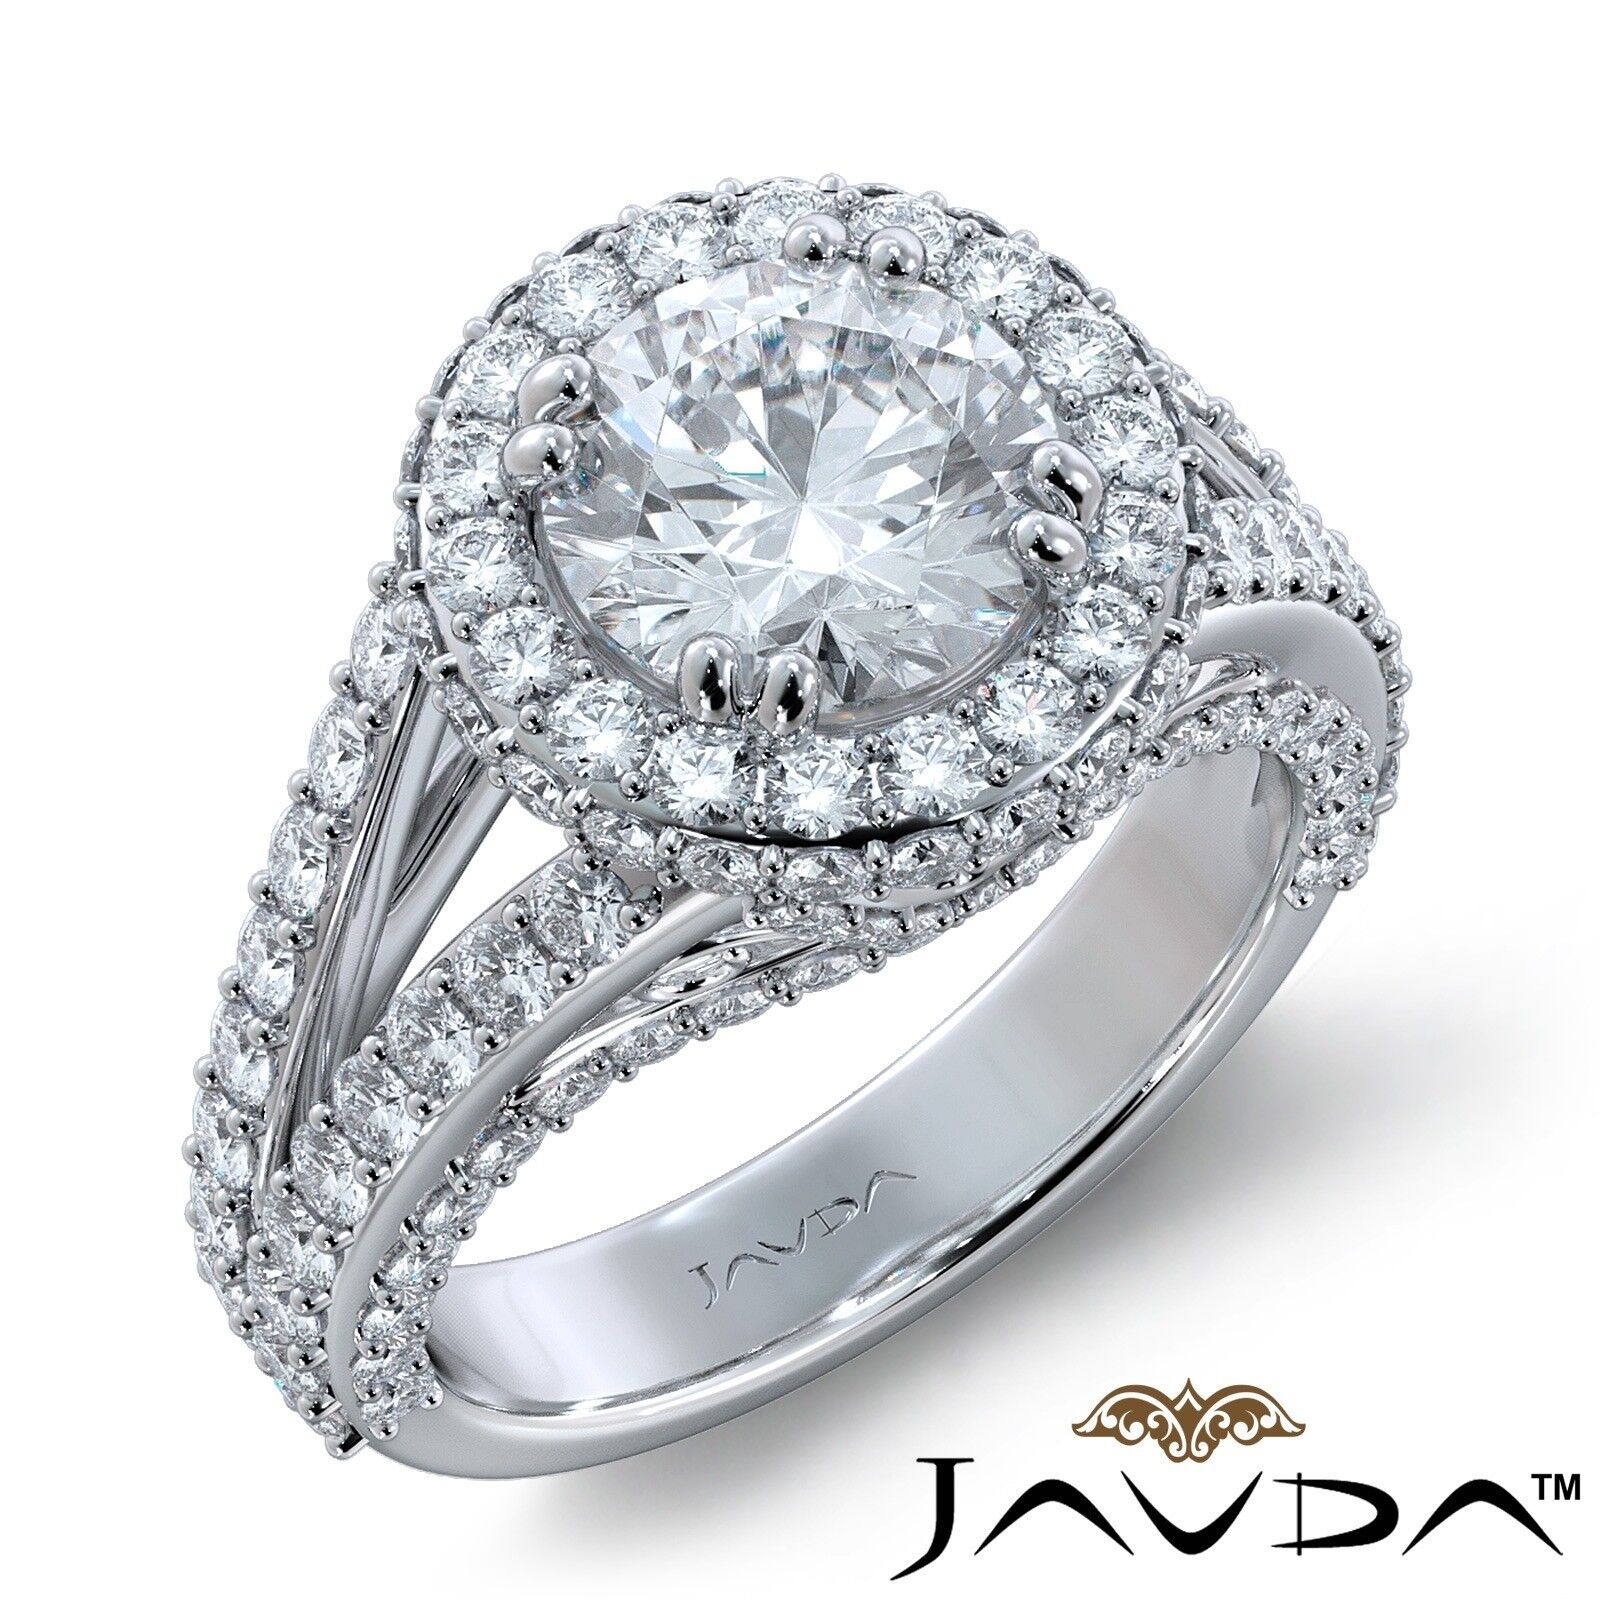 3.1ctw Halo Vintage Style Round Diamond Engagement Ring GIA I-VVS2 White Gold